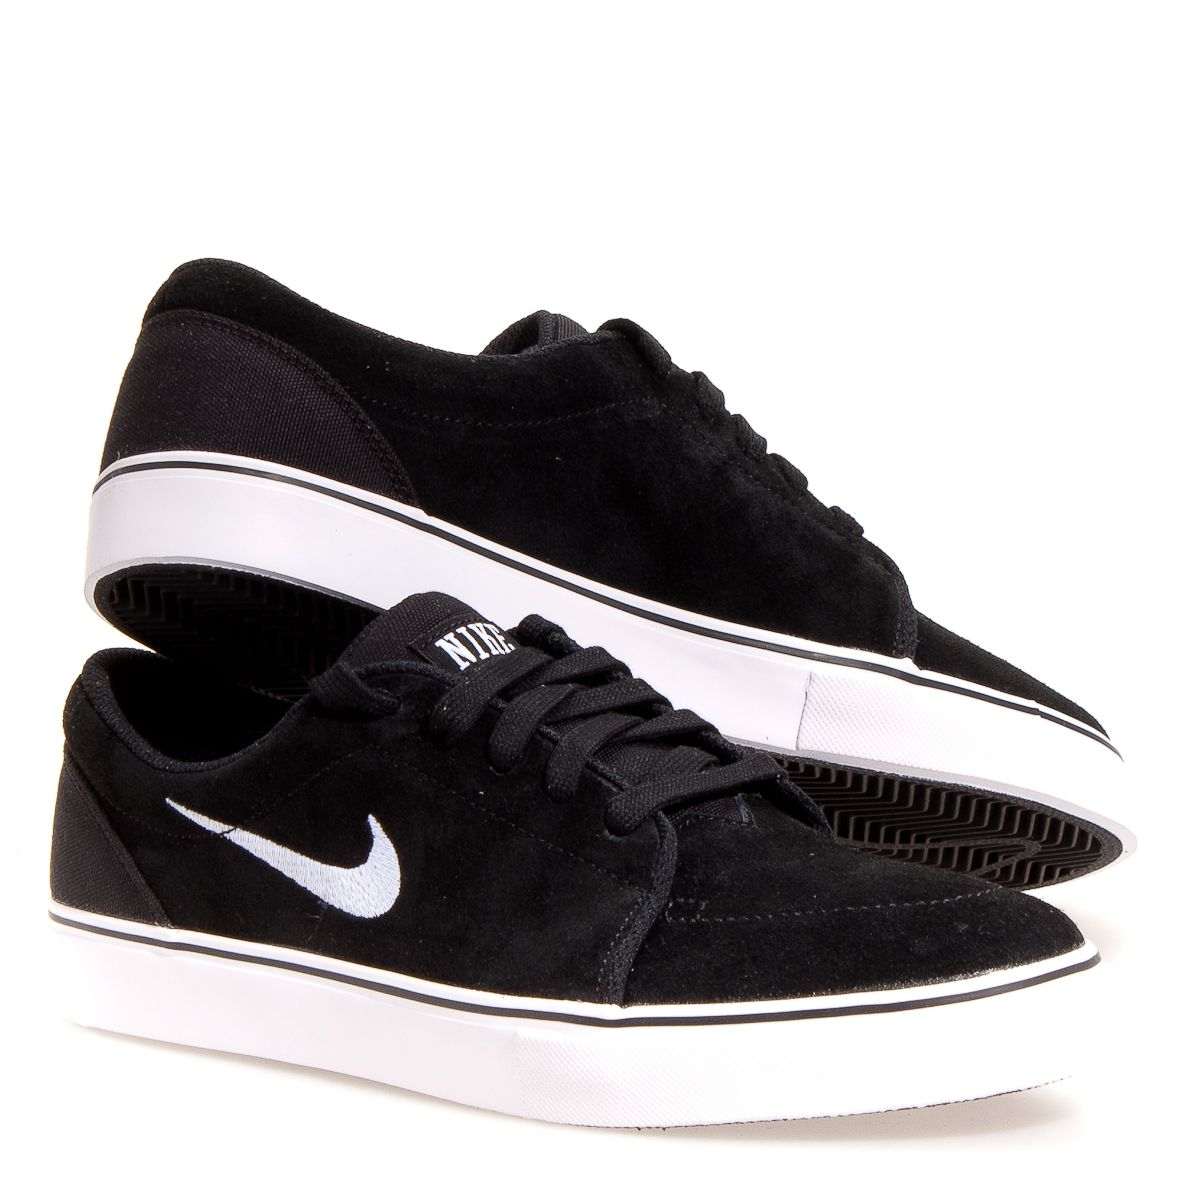 nike satire s skate shoes black 13 shoes